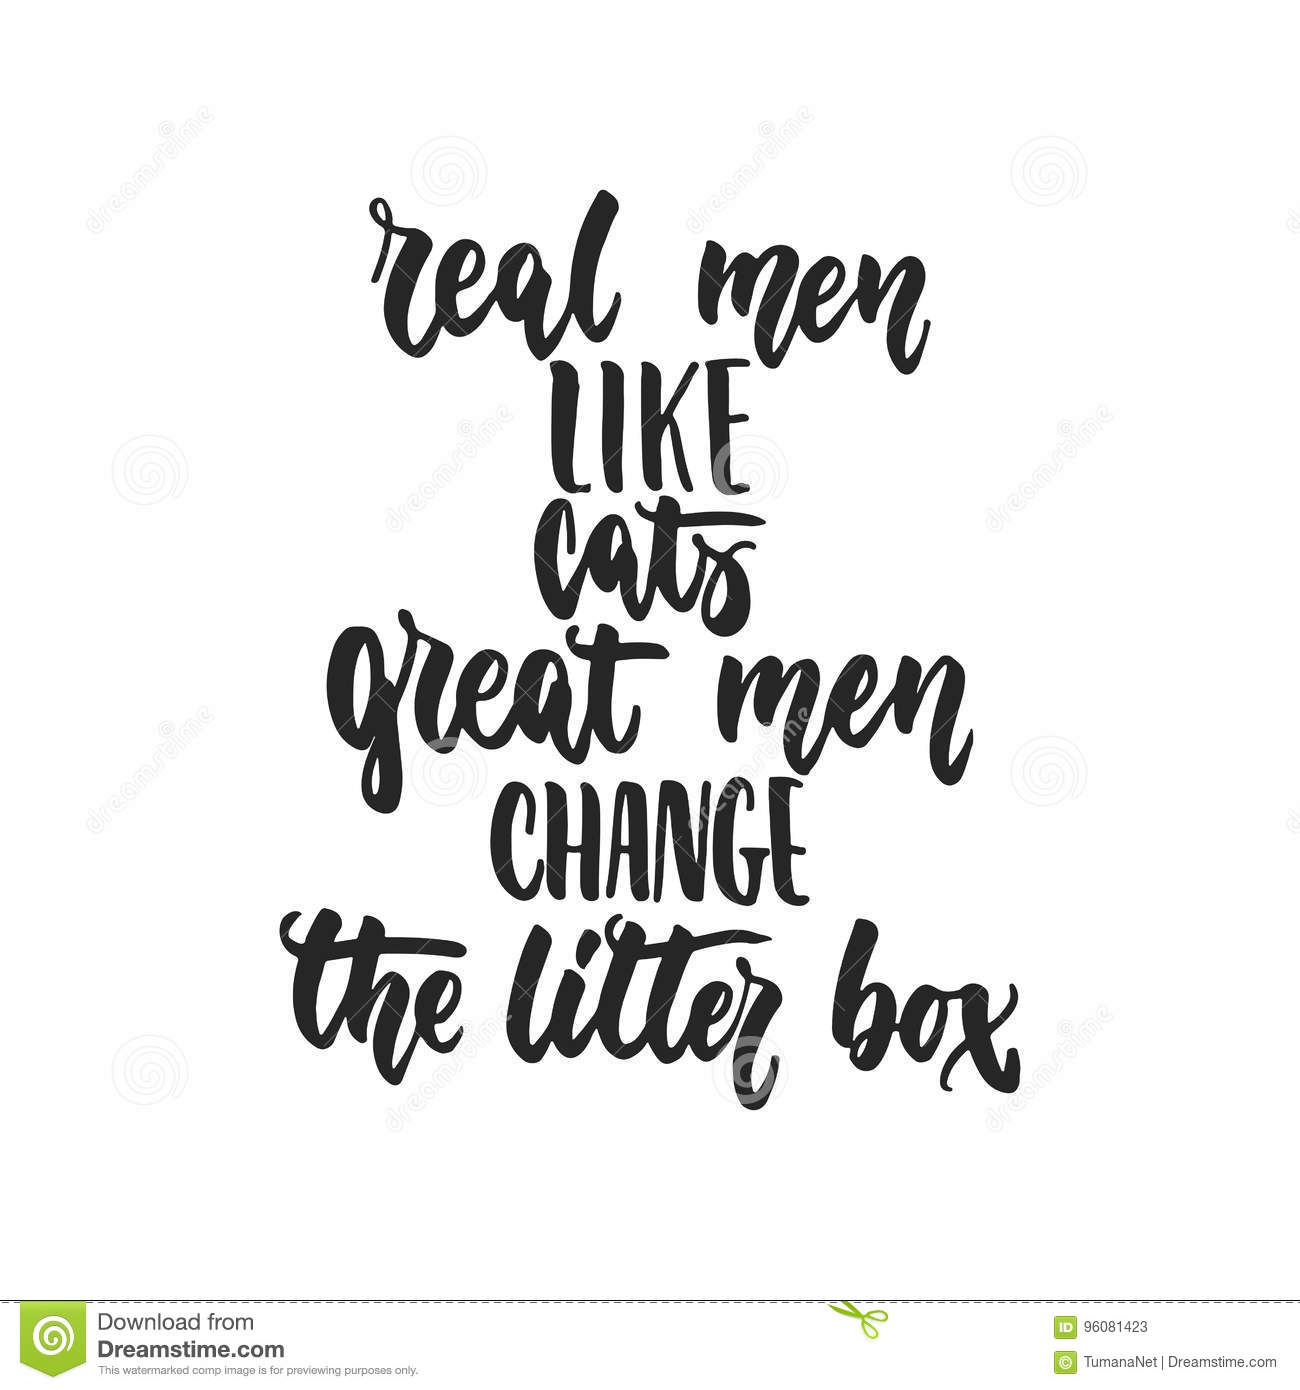 Real Time Stock Quotes Ticker: Real Men Like Cats, Great Men Change The Litter Box